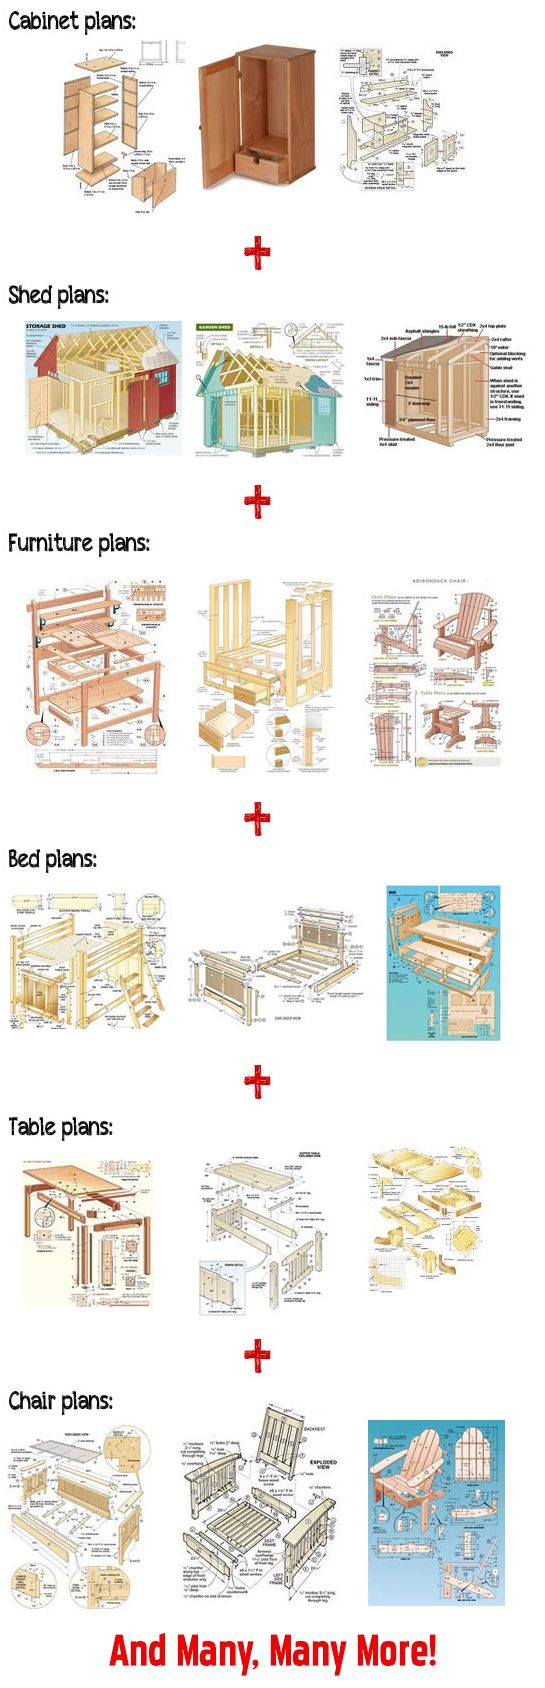 100 Free Woodworking Plans (Sales Letter) (OP2) — 100 Free Woodworking Plans